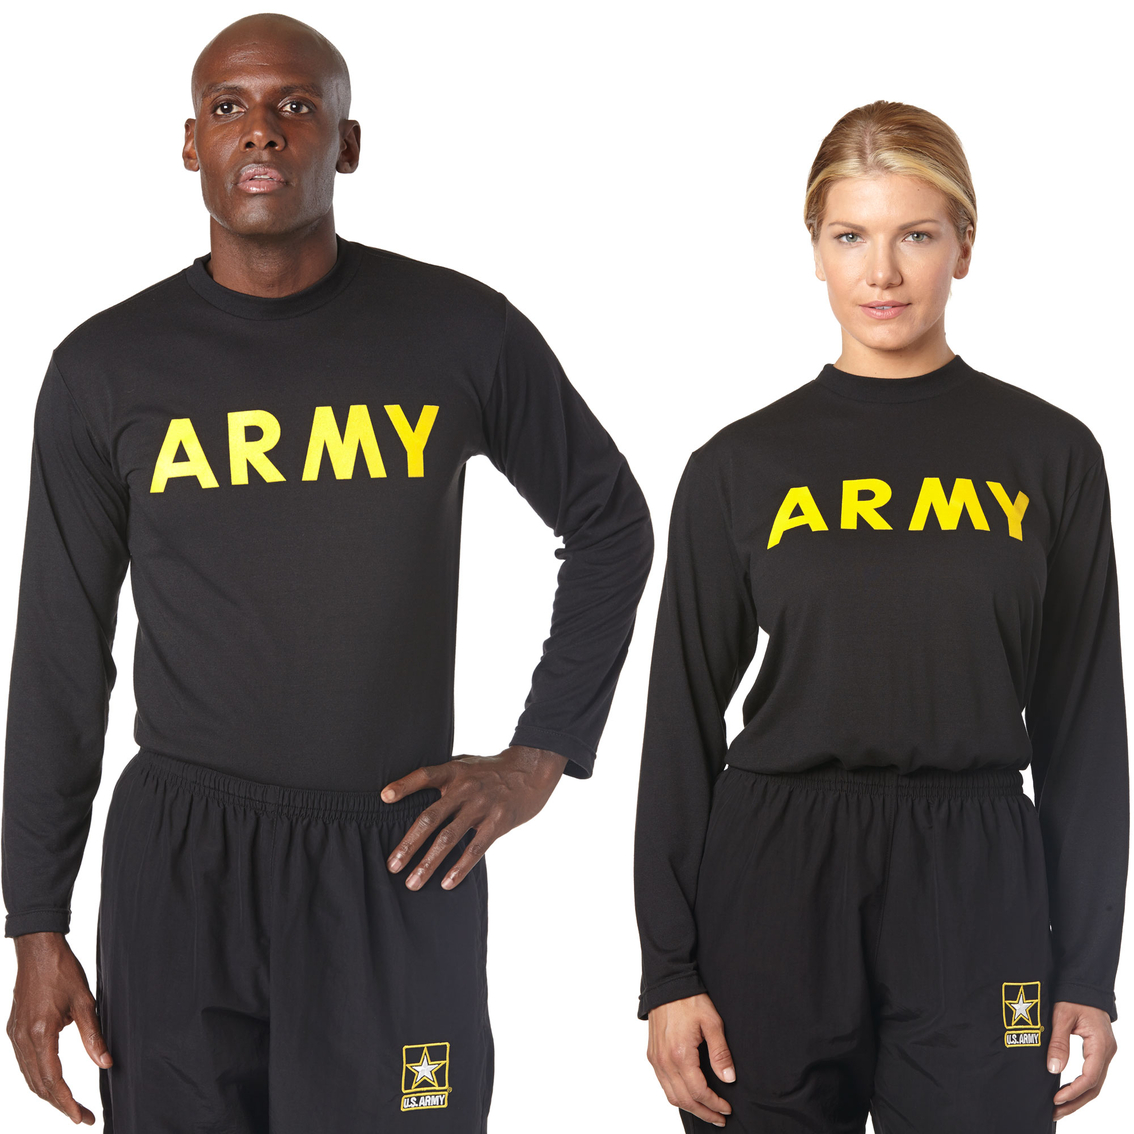 Dlats Army Apfu Tee | Apfu Tshirt Long Sleeve | Shop The